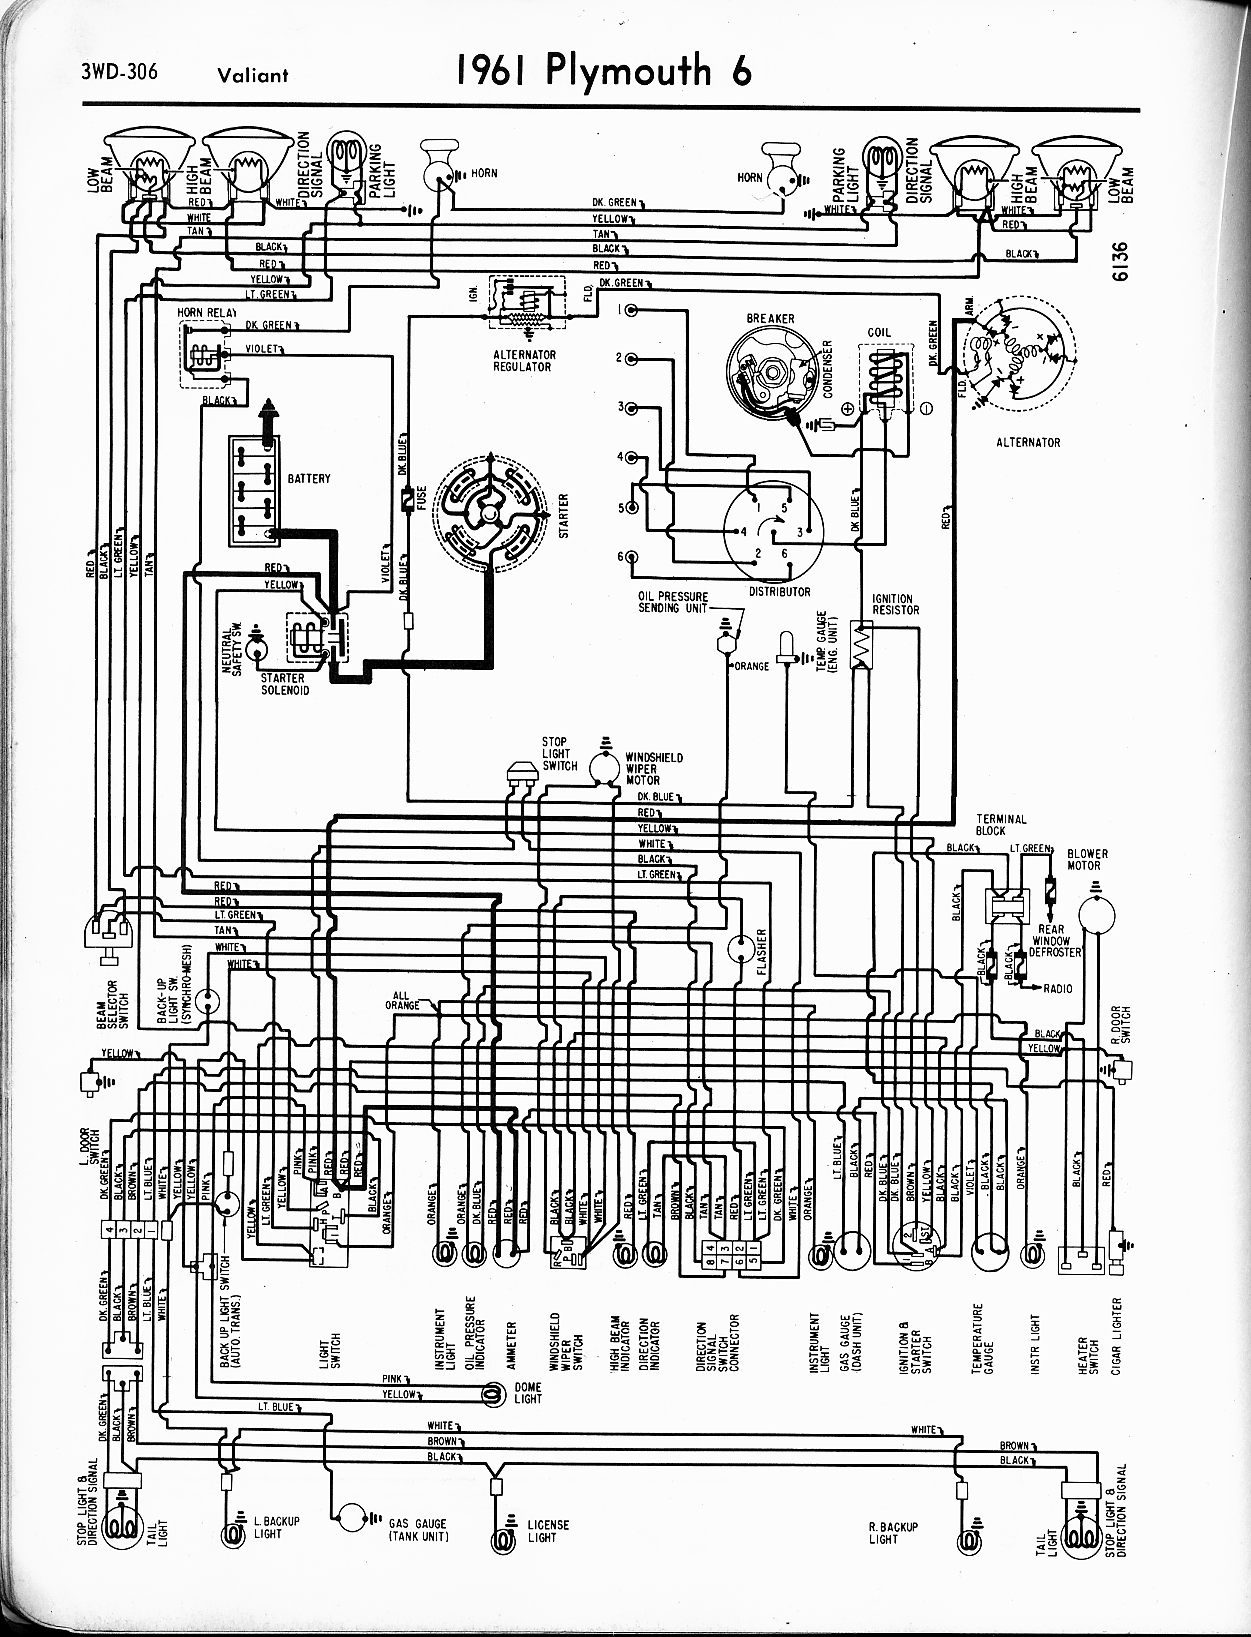 medium resolution of wiring diagram for 1965 plymouth valiant use wiring diagram 68 plymouth wiring diagram